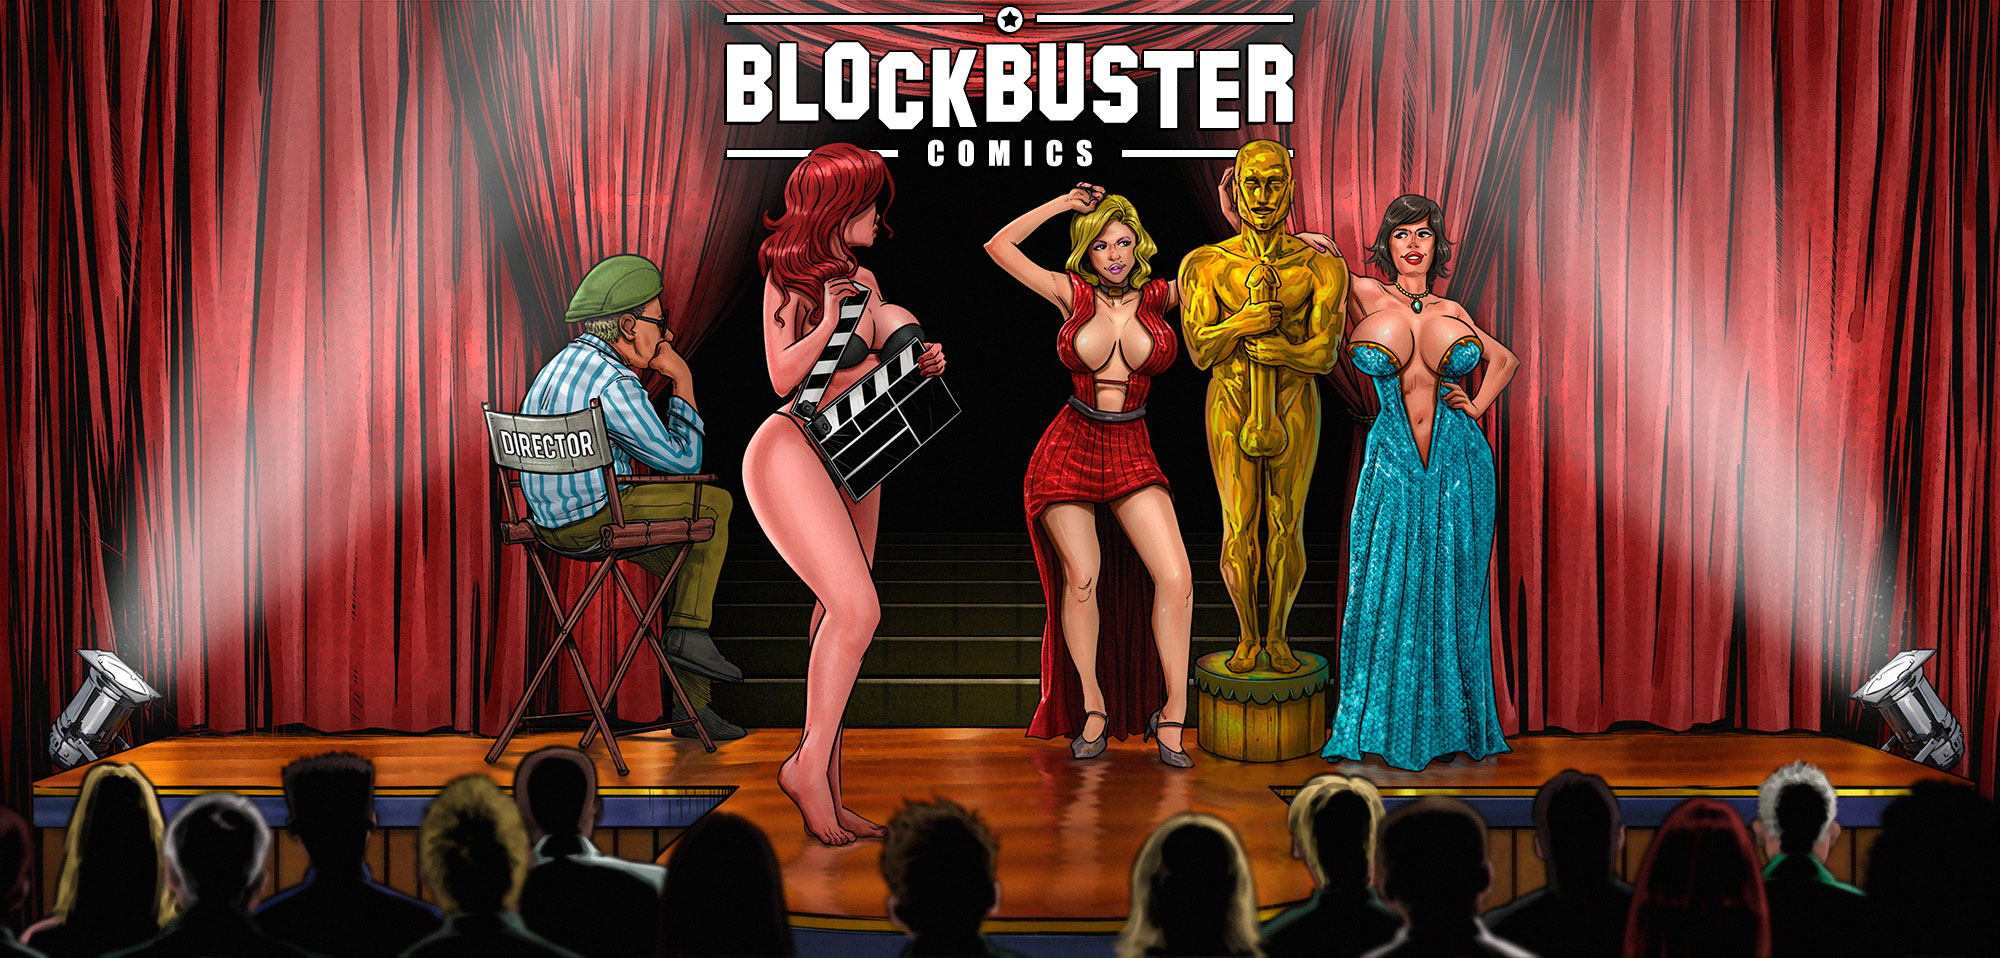 Blockbuster Comics - header